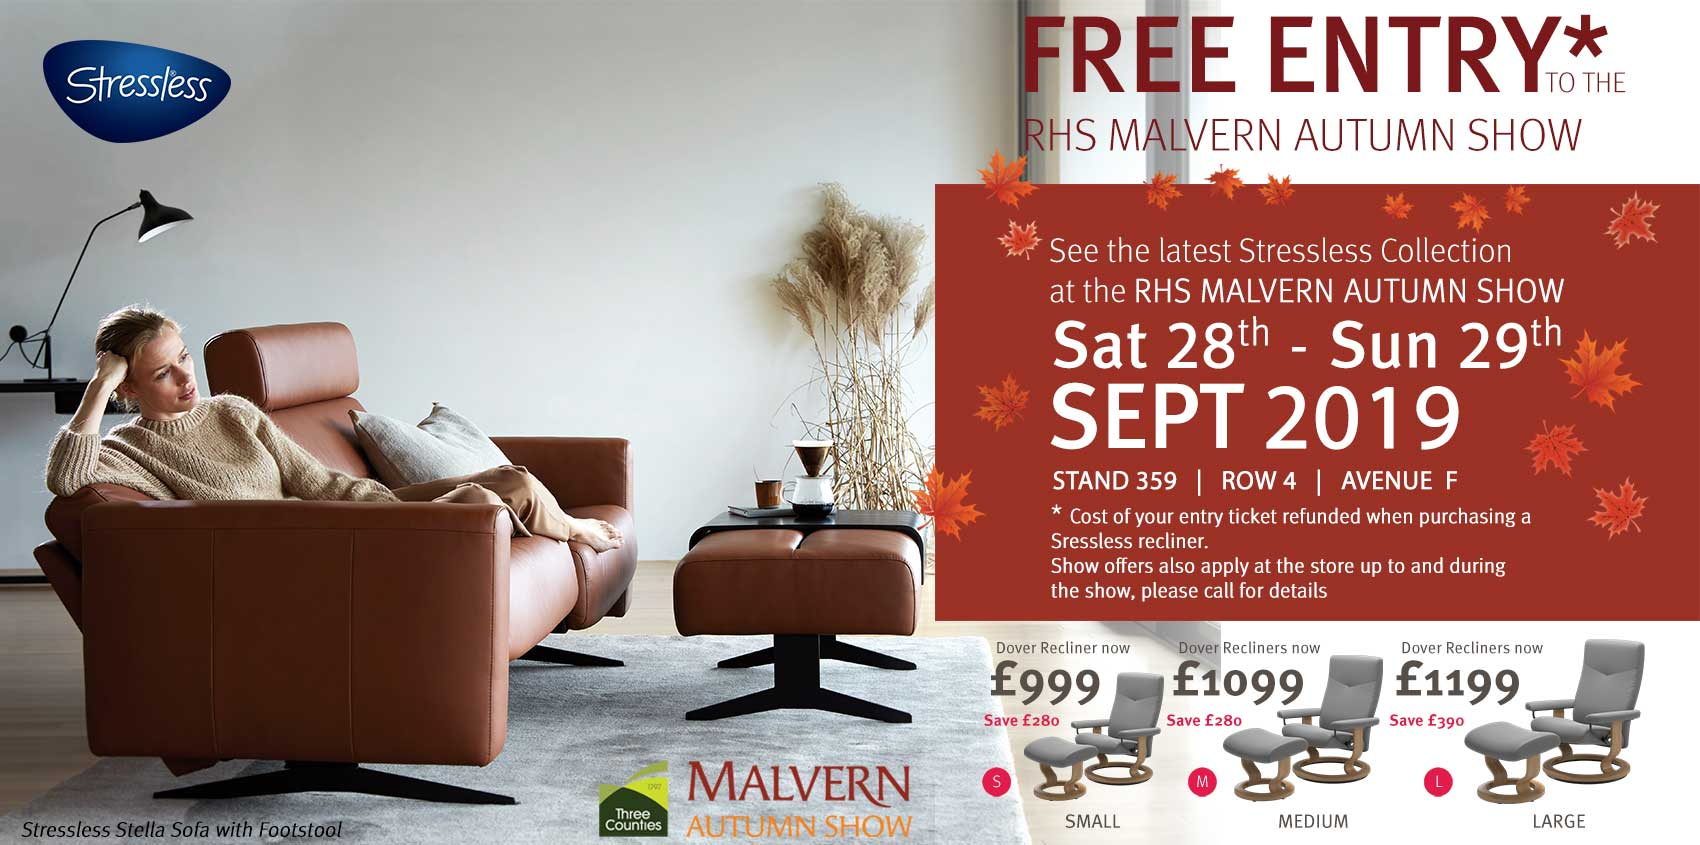 Insitu offers at the Malvern Autumn Show